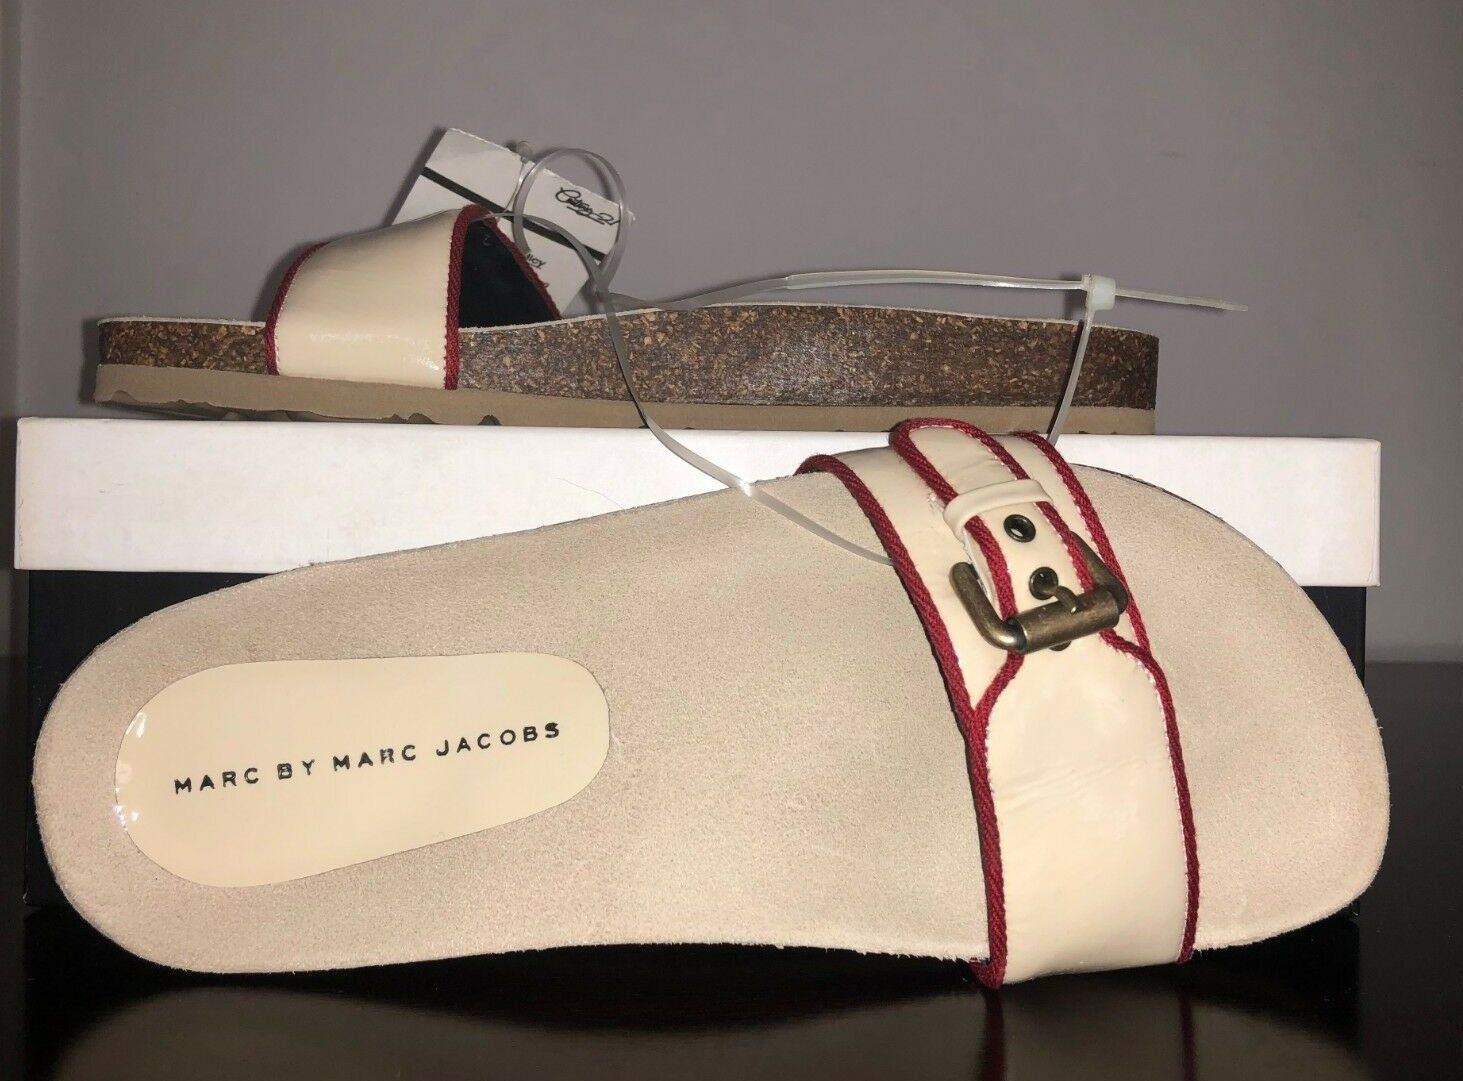 NIB RARE  Marc By Marc Jacobs Buckle Sandals Slides Ivory Red, Size 9.5M, 39.5EU